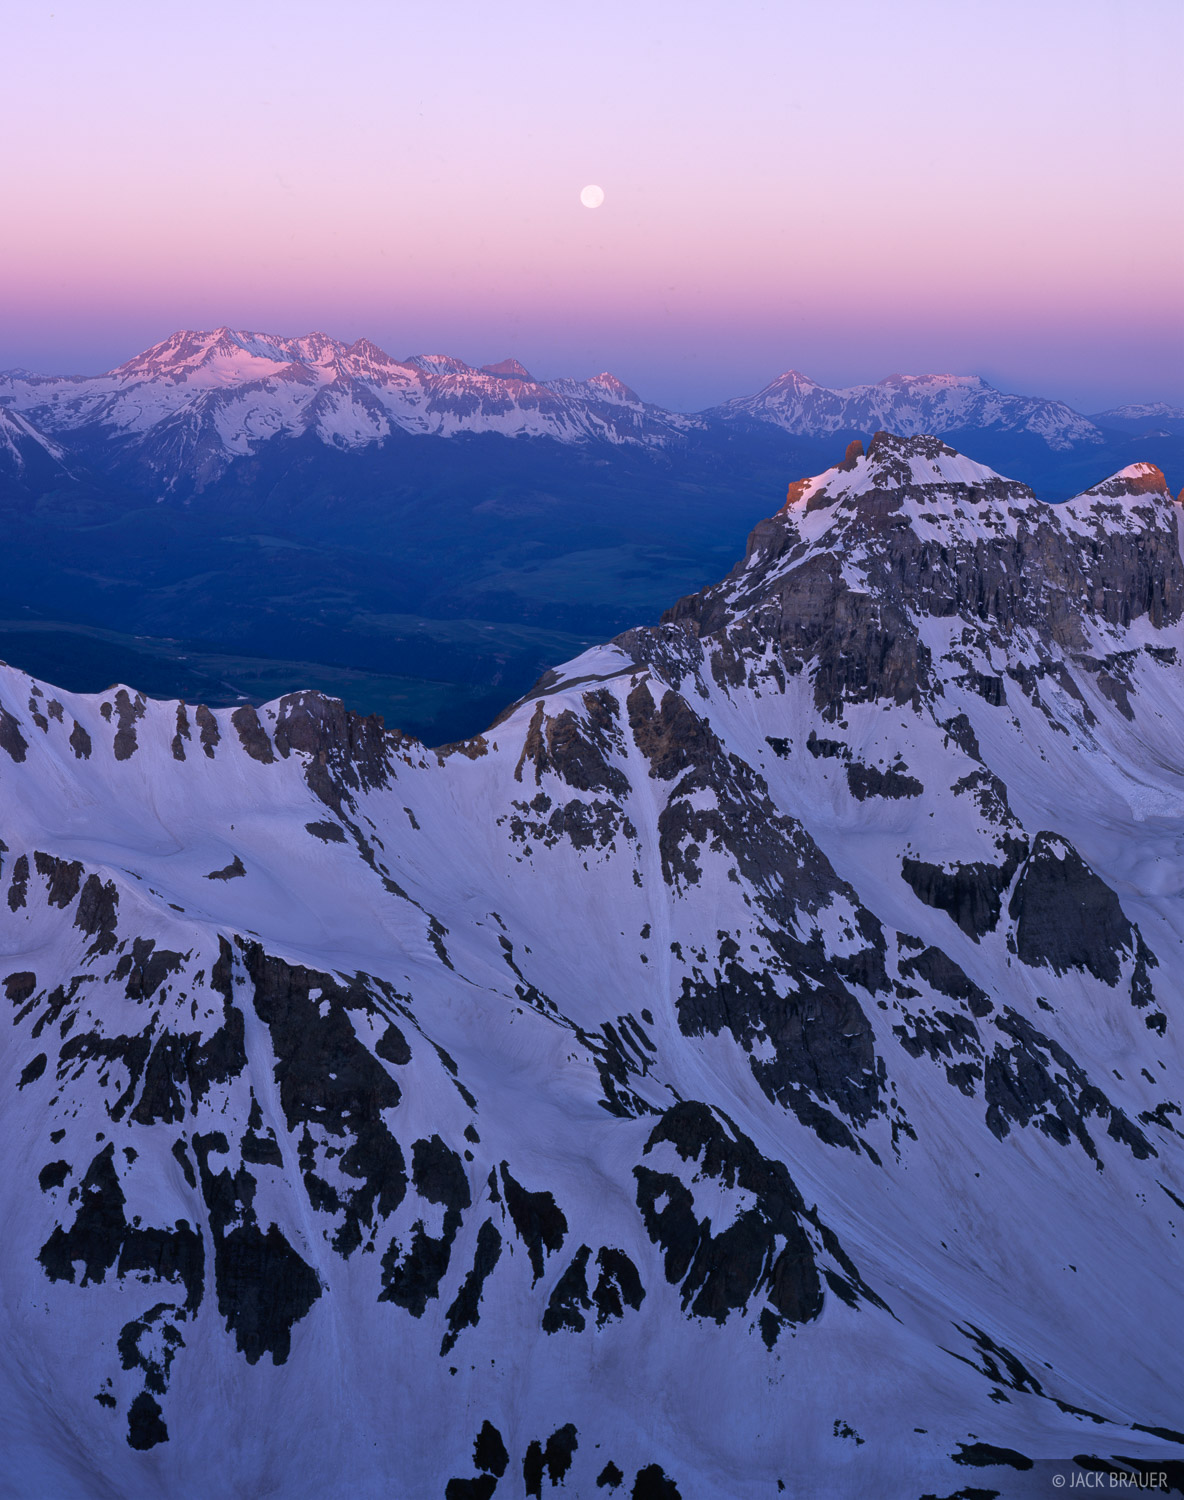 San Miguel Range, moonset, San Juan Mountains, Colorado, photo